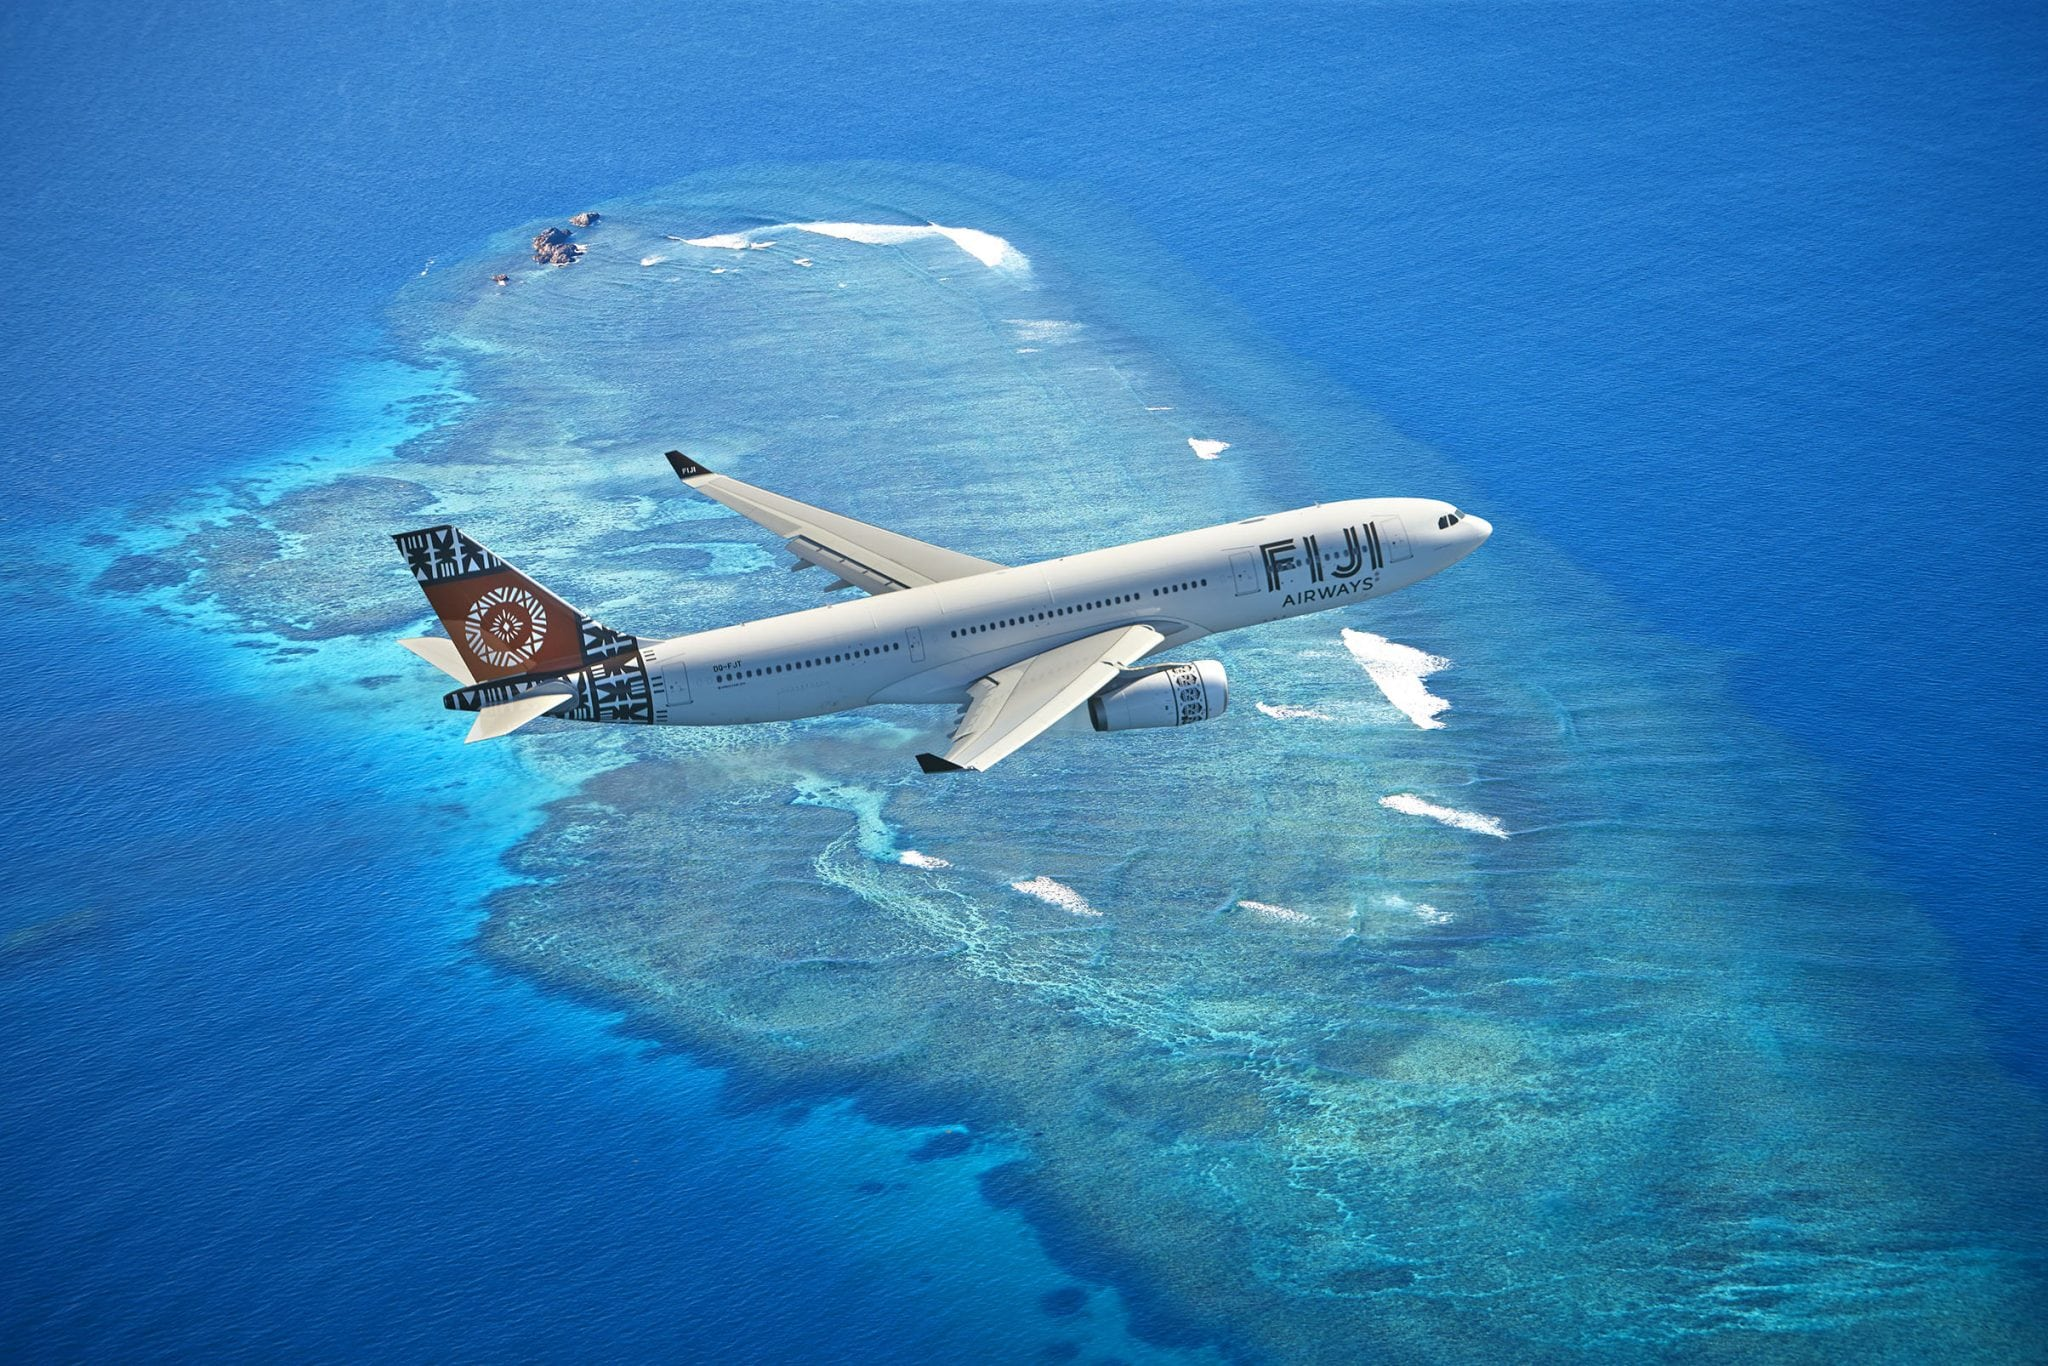 https://i0.wp.com/www.aviationtoday.com/wp-content/uploads/2014/08/Fiji20AIrways20flying.jpg